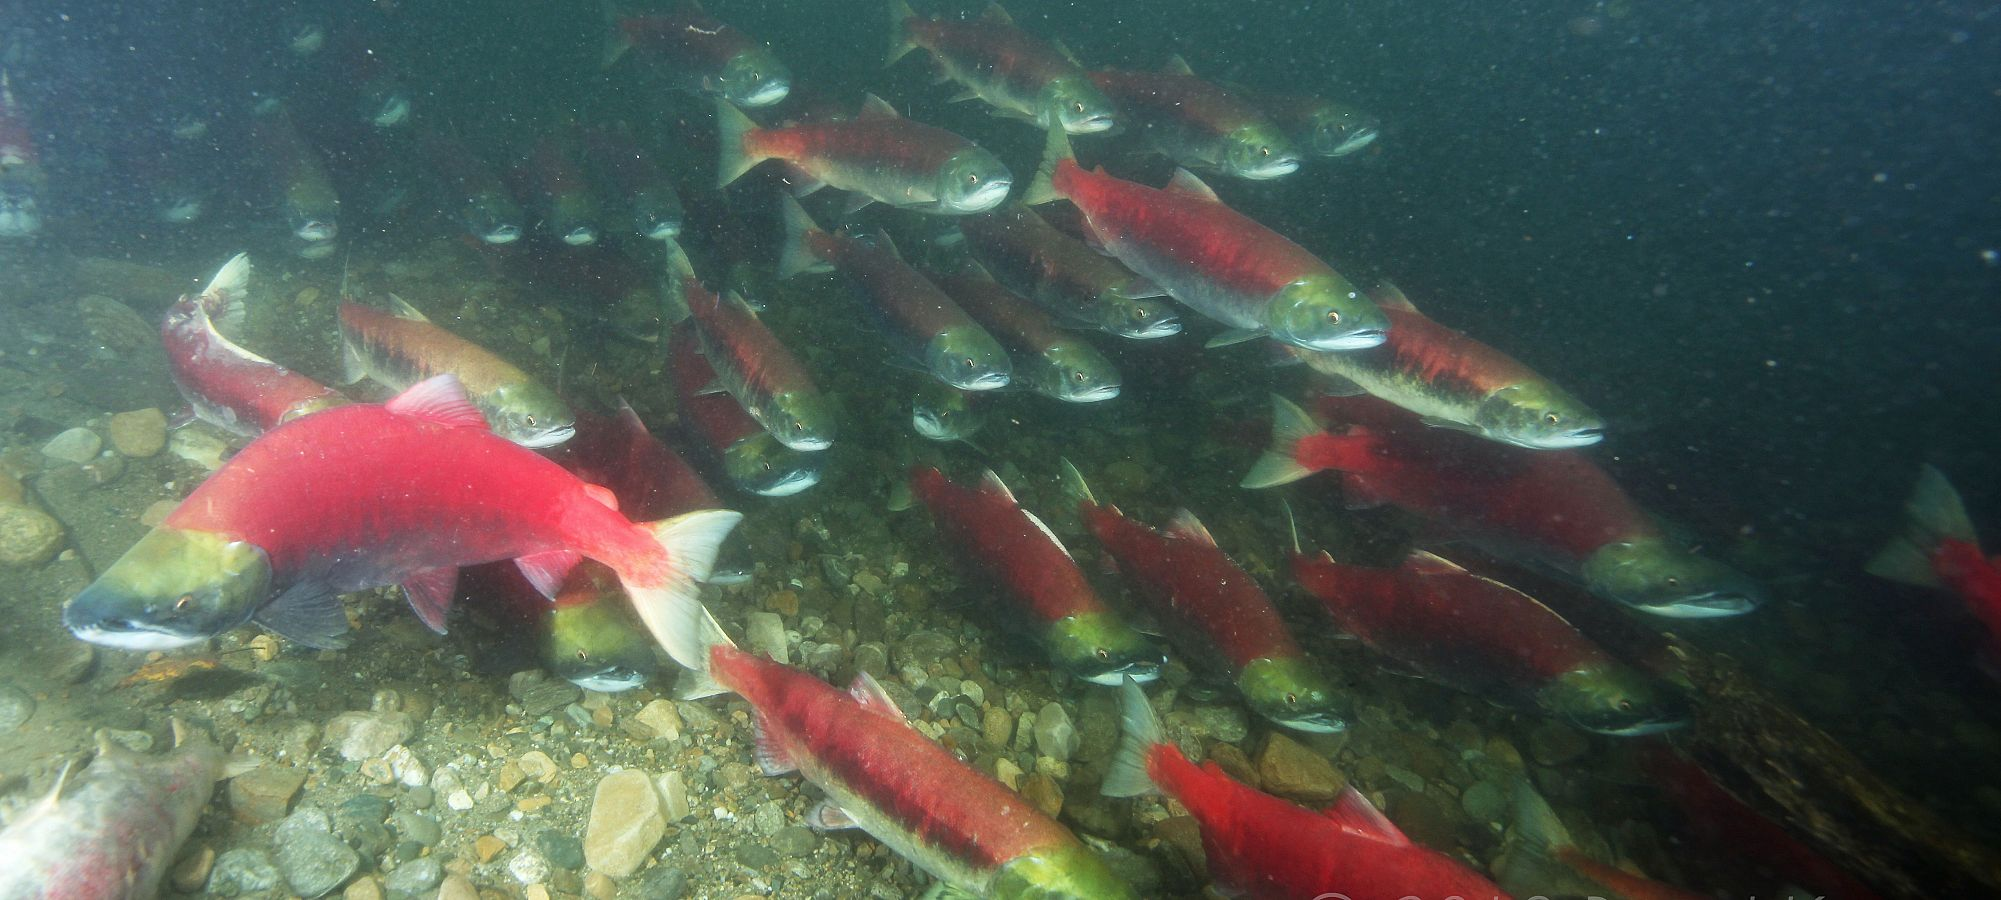 Stock assessment - Pacific salmon